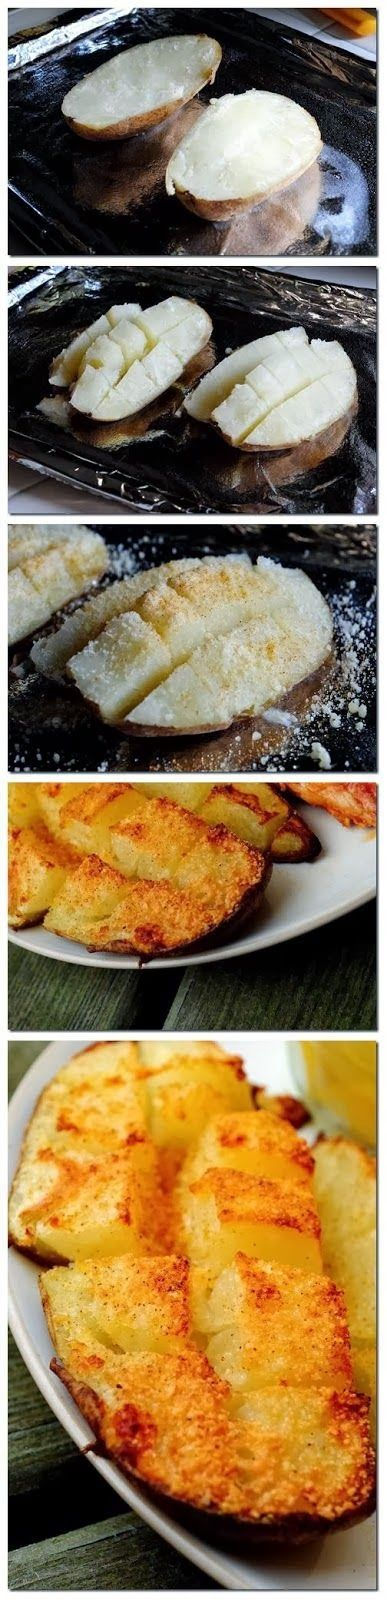 How To Seasoned Roasted Potatoes